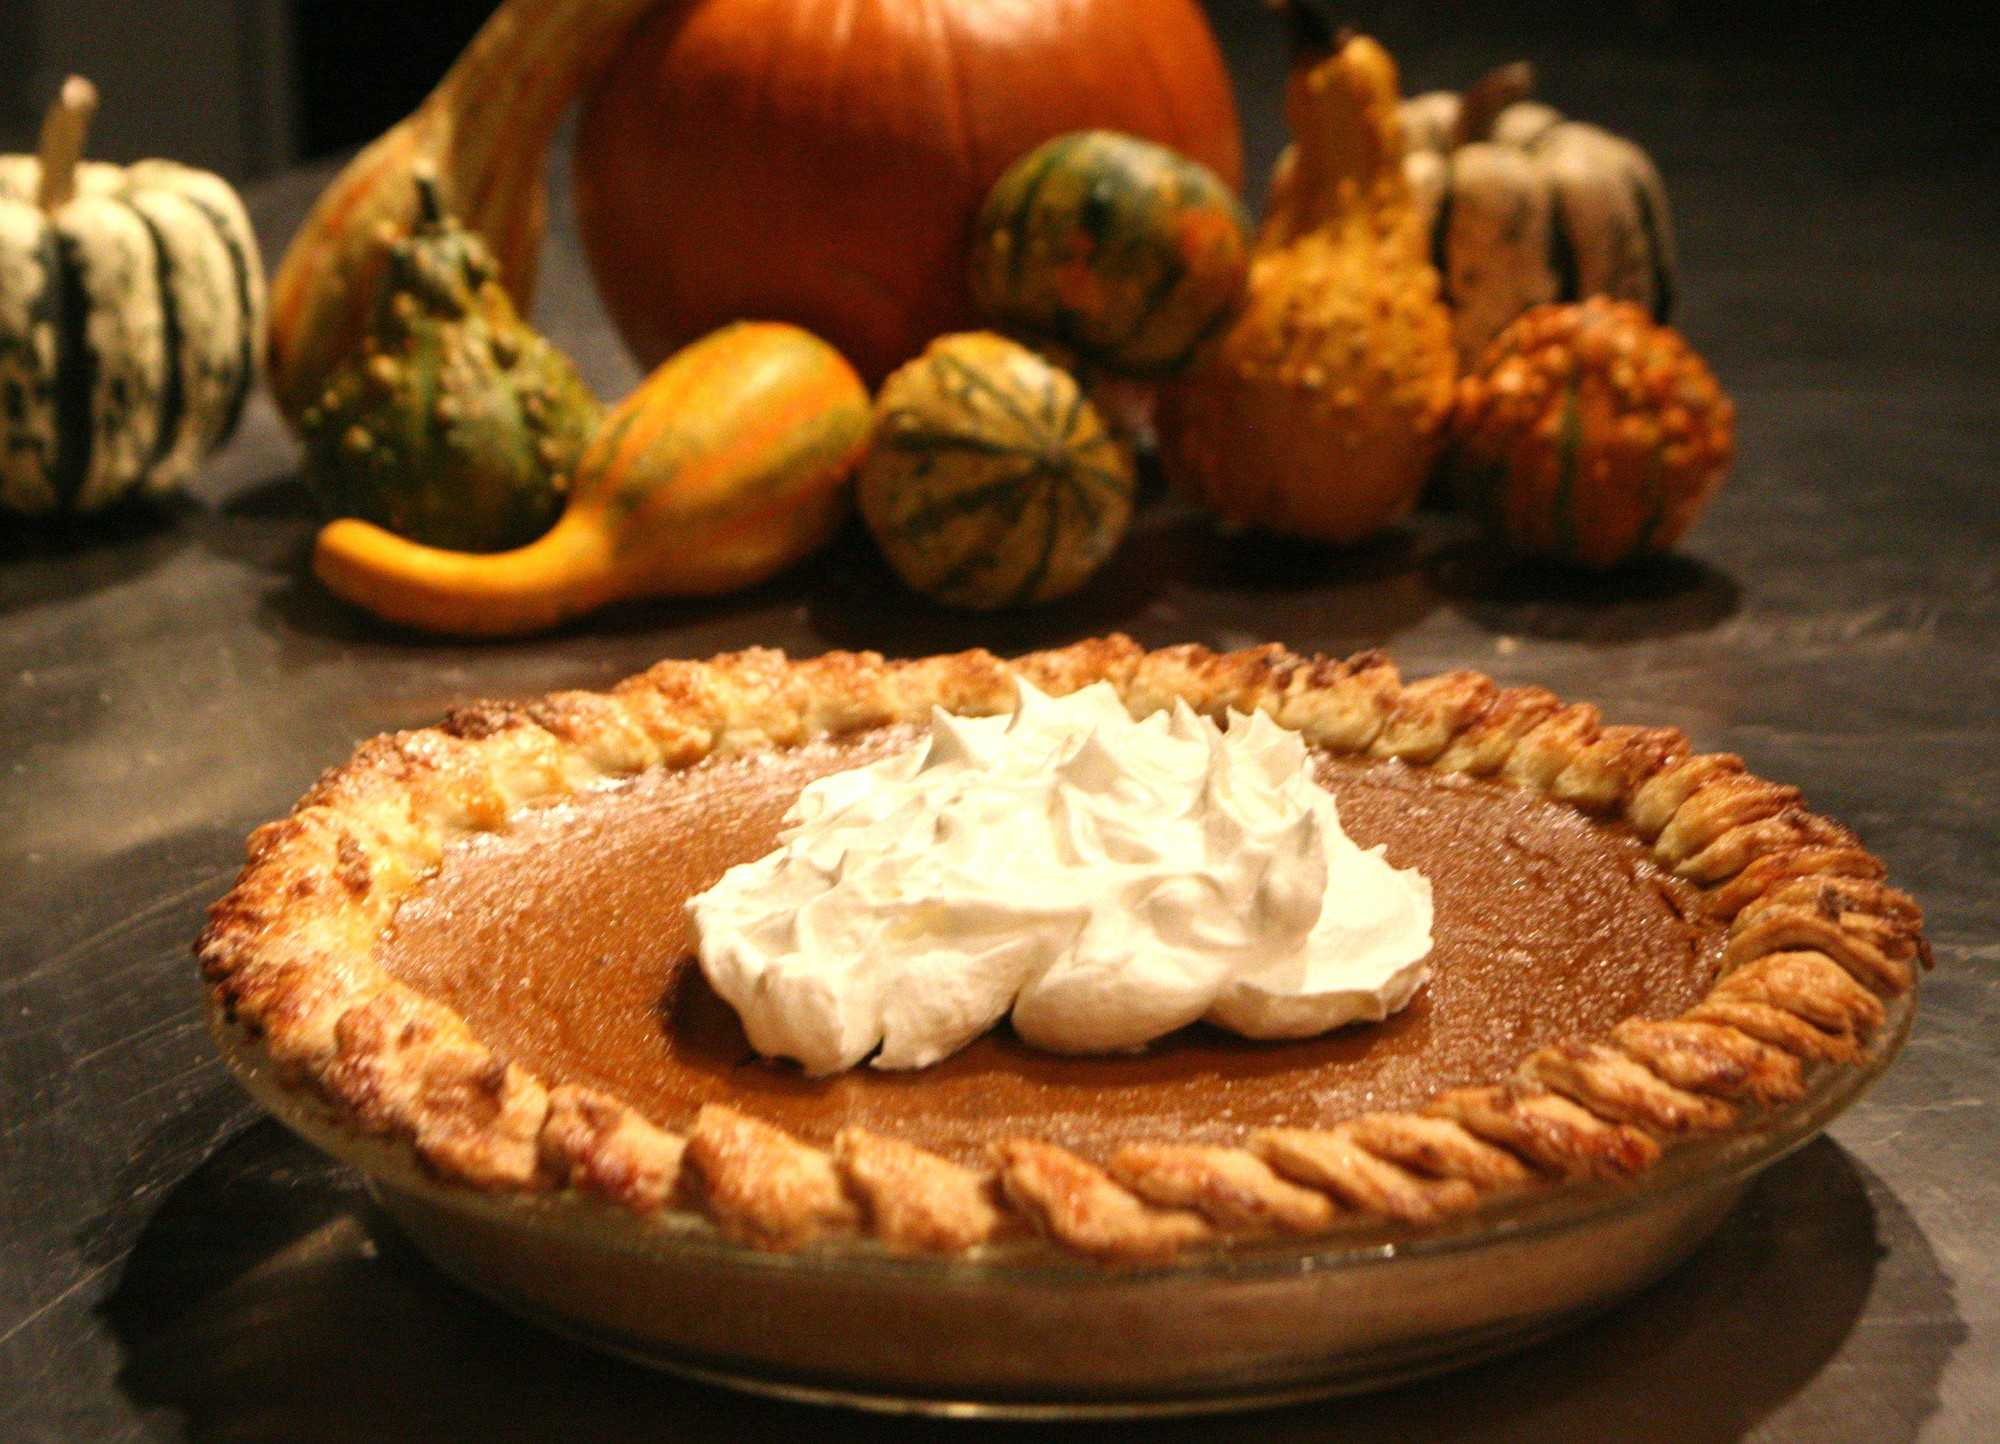 Spice+Pumpkin+Pie%2C+topped+with+a+brandied+ginger+cream.++%28Mary+Schroeder%2FDetroit+Free+Press%2FMCT%29